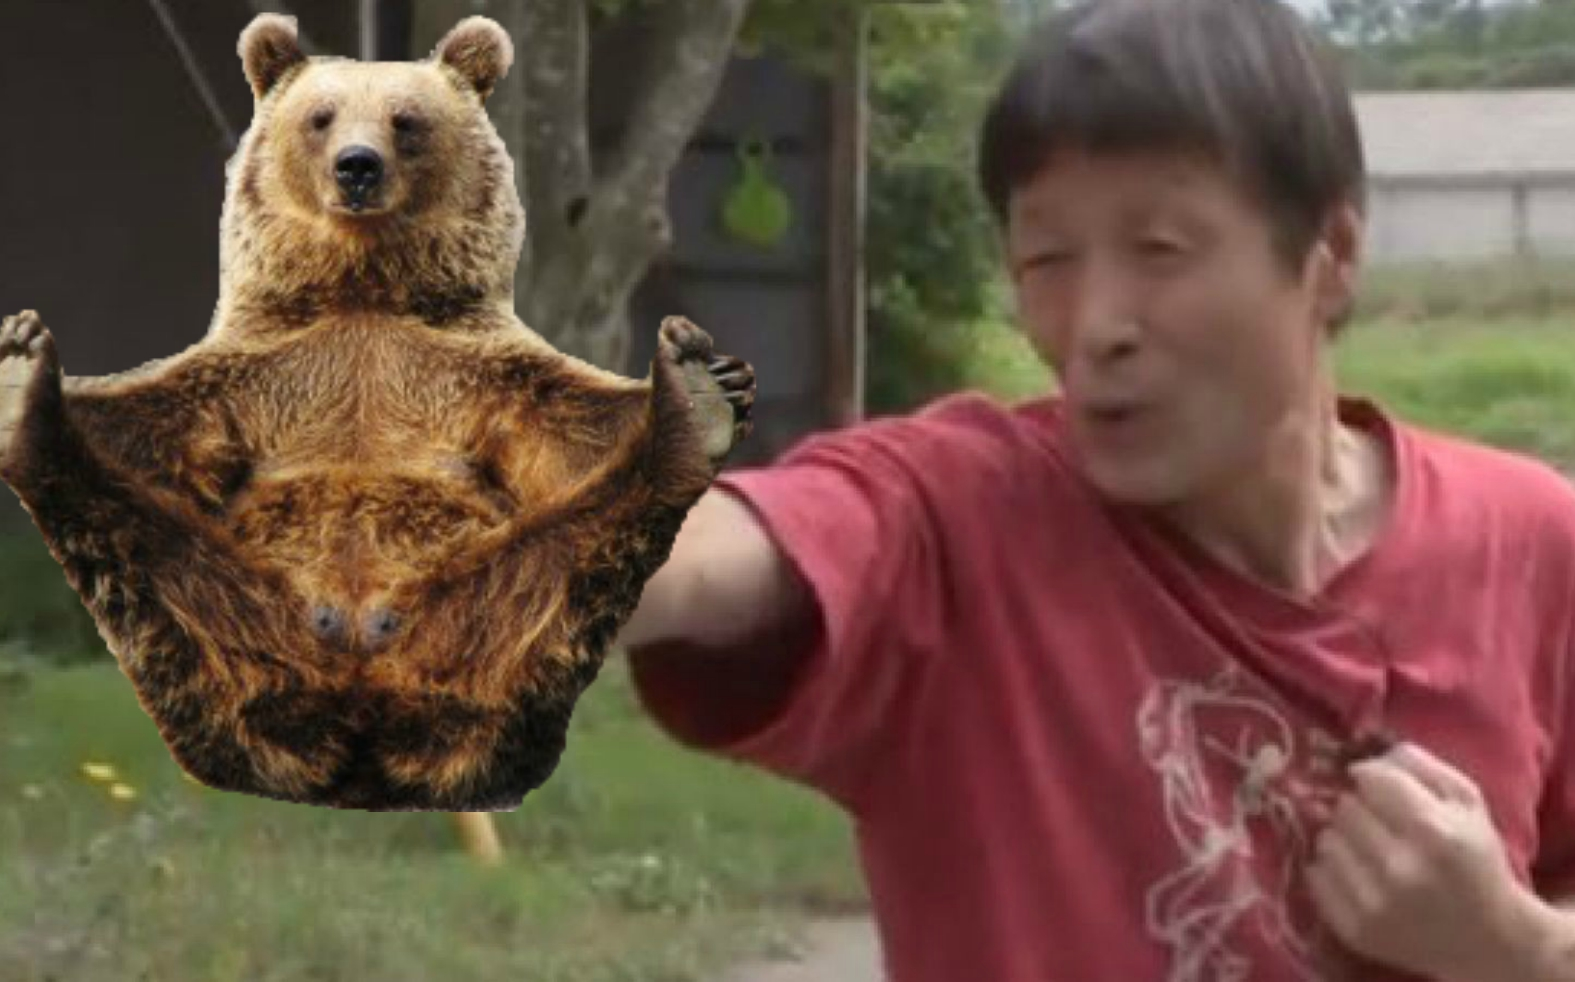 Japan: 63 yr Old Fights Off Attacking Bear Using Karate